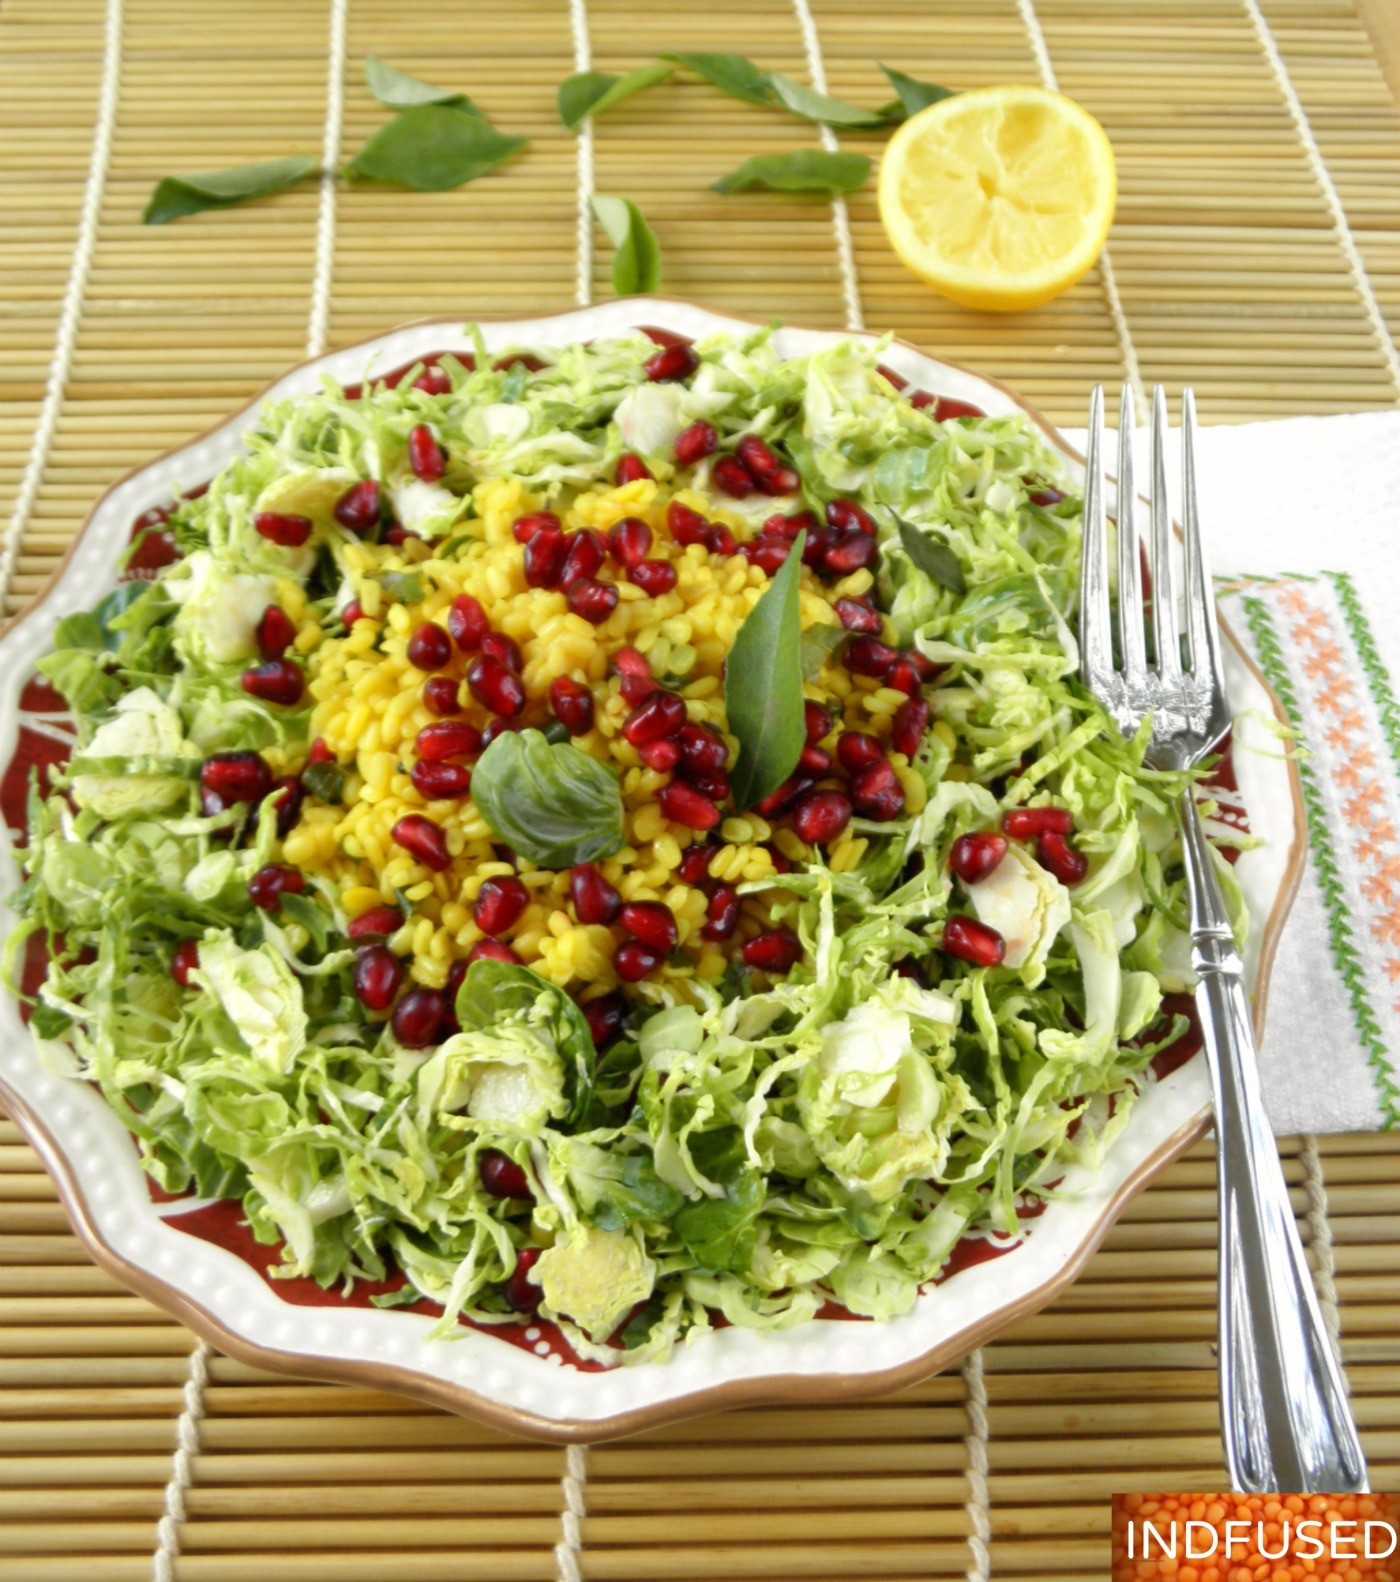 Easy recipe for a nutrition packed salad. Indian fusion recipe for clean eating. Gluten free, vegetarian, low fat dressing.